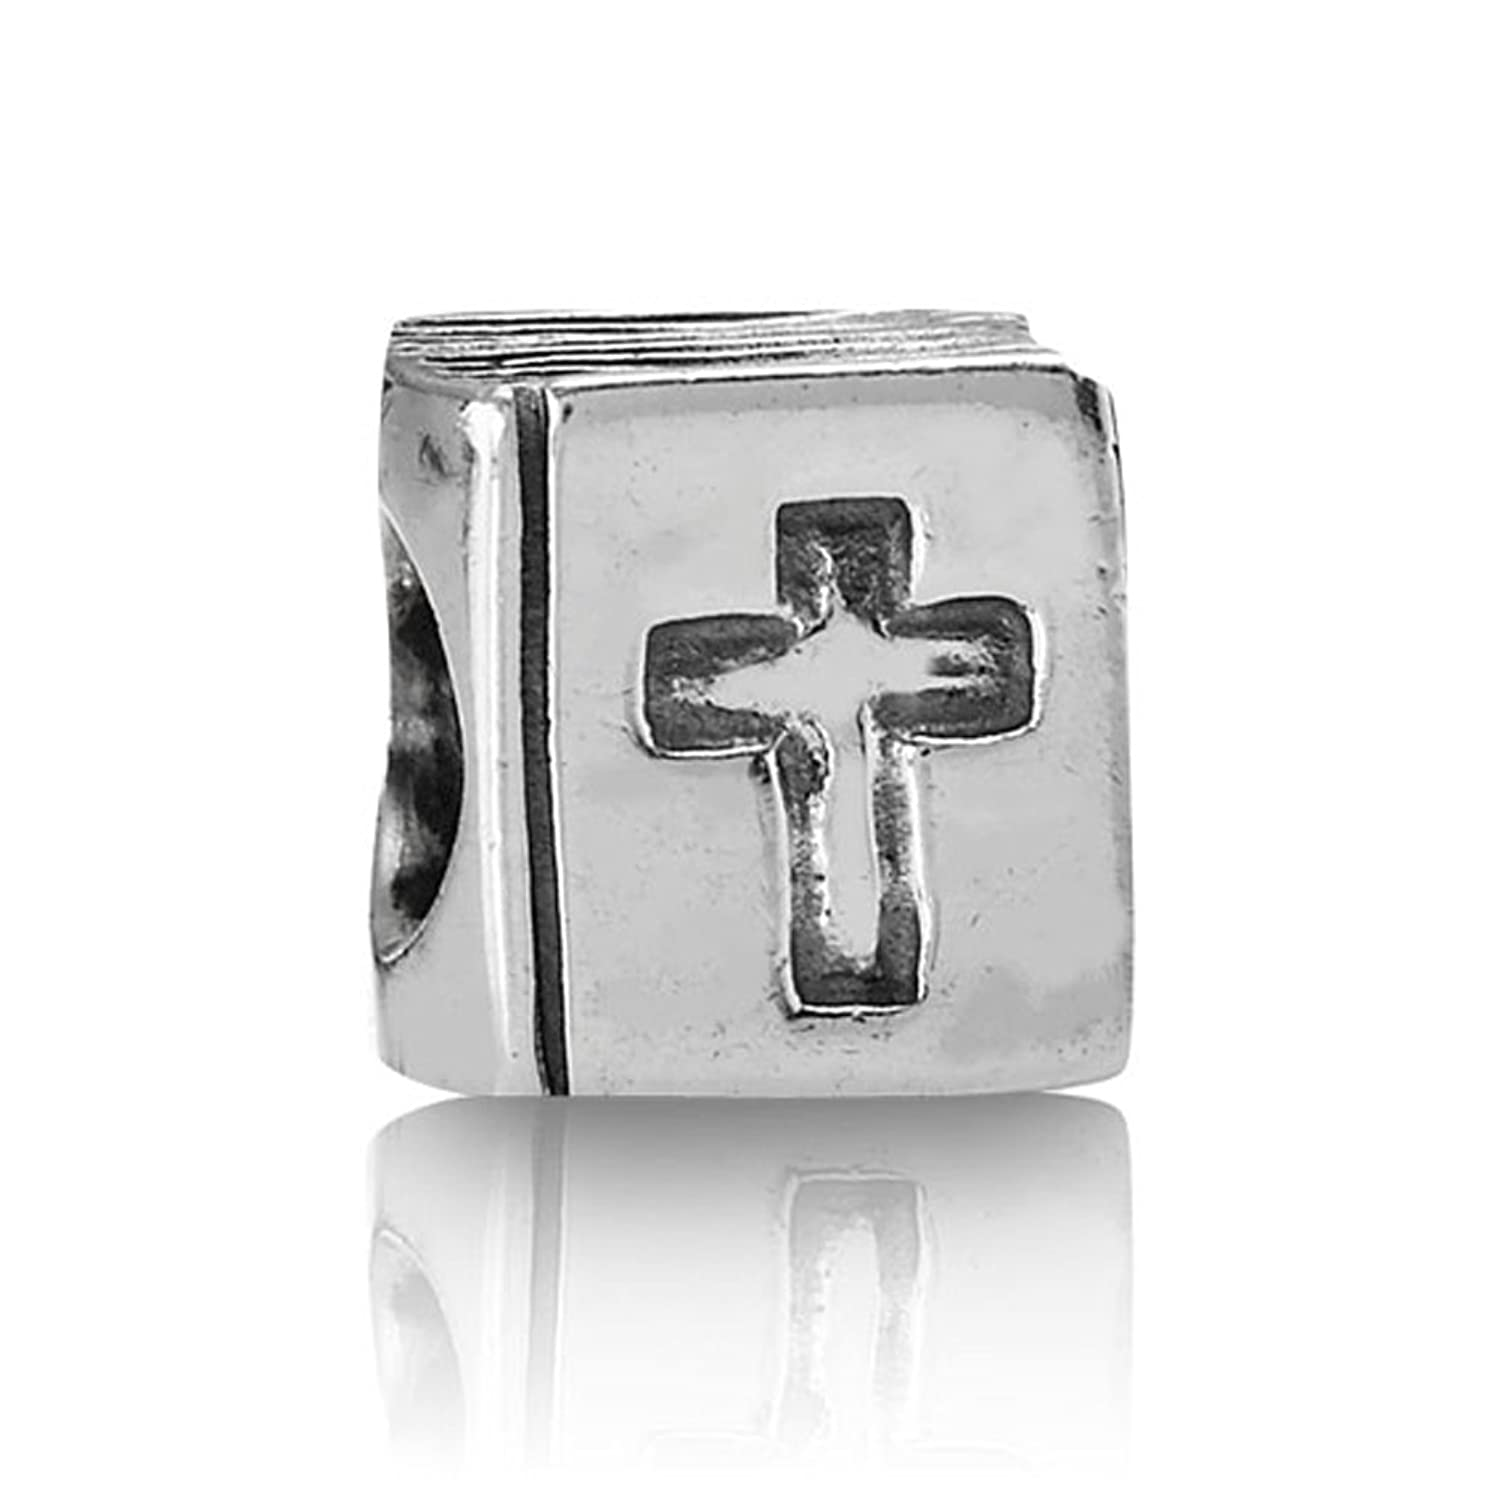 Amazon.com: Pandora Bible Charm in 925 Sterling Silver, 790261: Jewelry